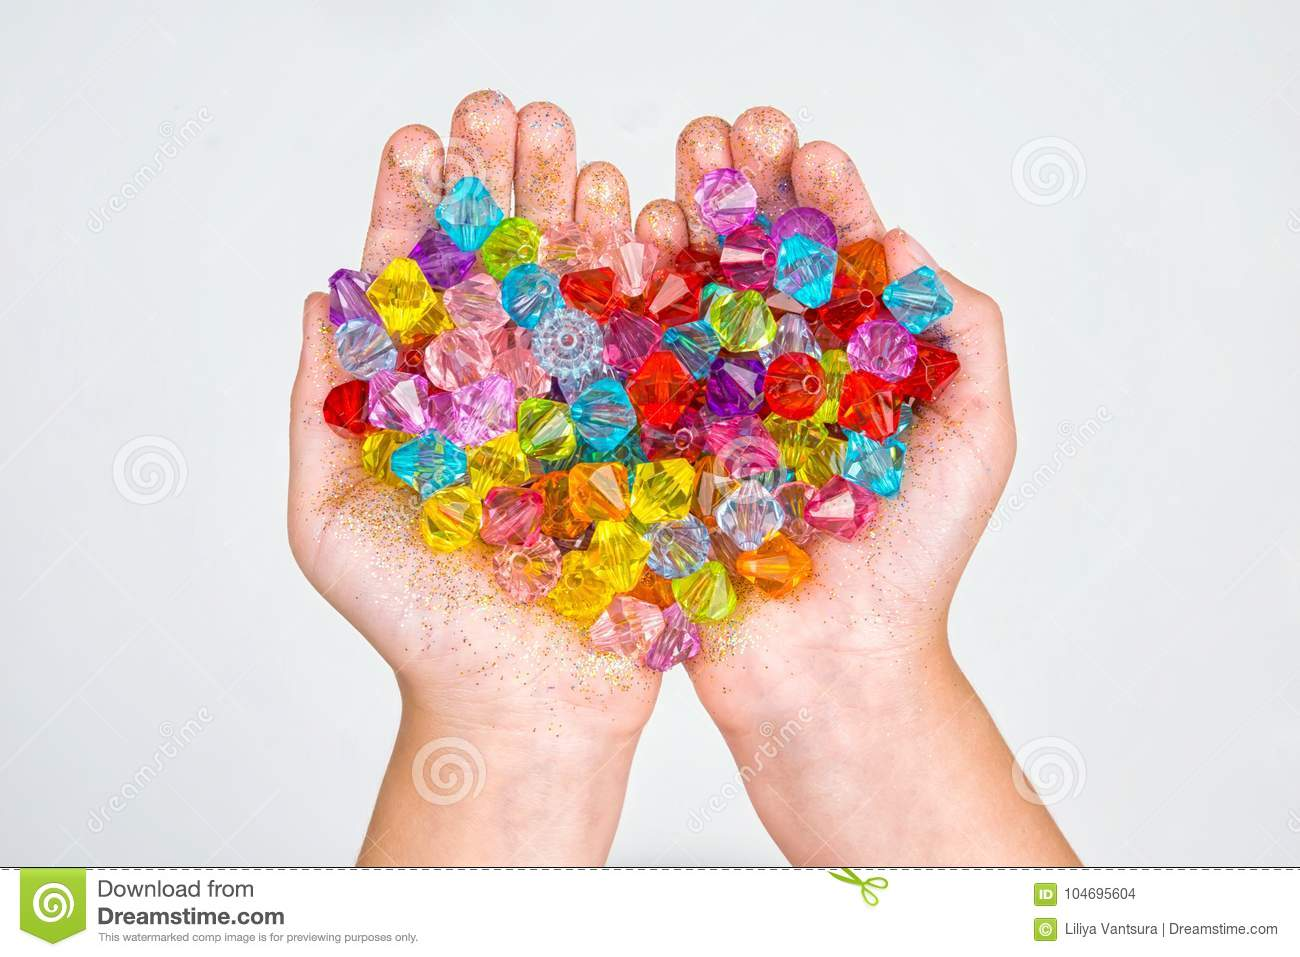 Children`s hands, hands holding beads on a white background